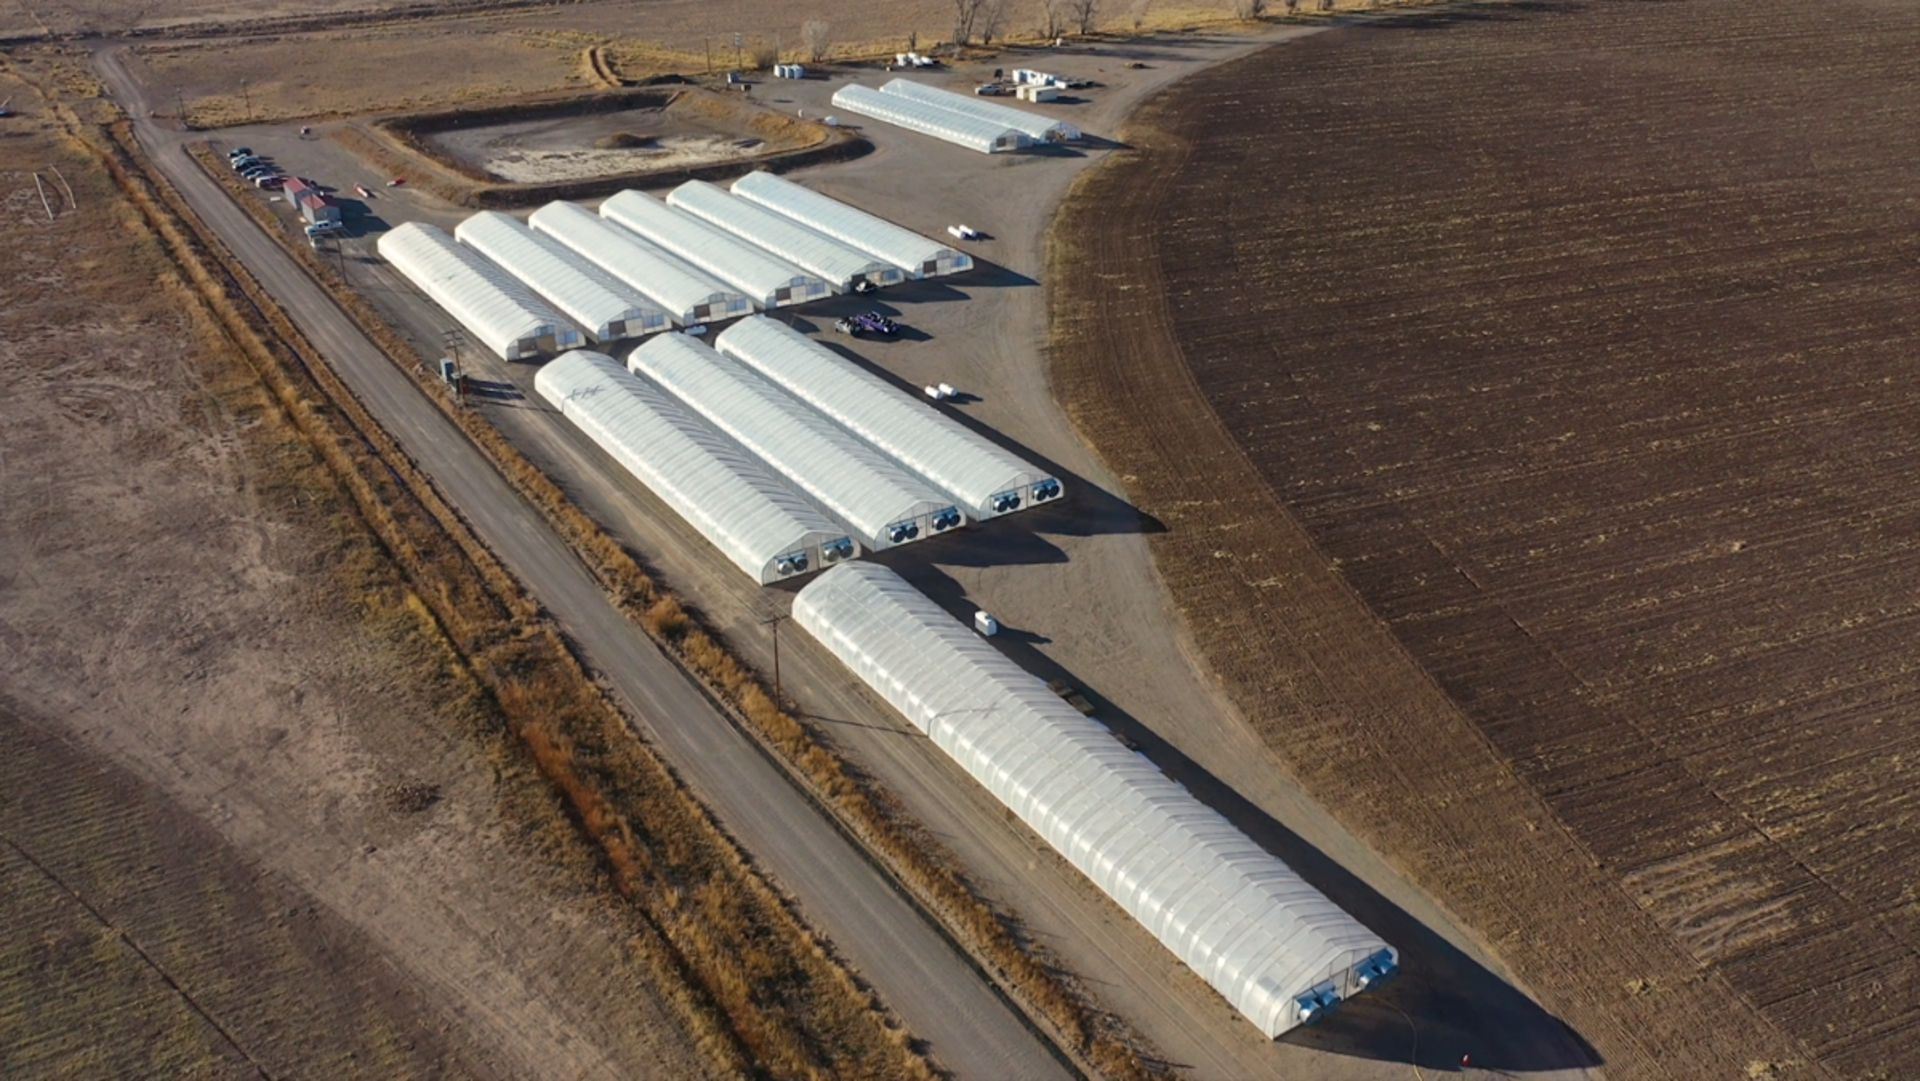 Scenic Acres Greenhouse Mfg Greenhouse w/ Four Exhaust Fans and Two Heaters, 34' x 200' gothic hoop - Image 8 of 8